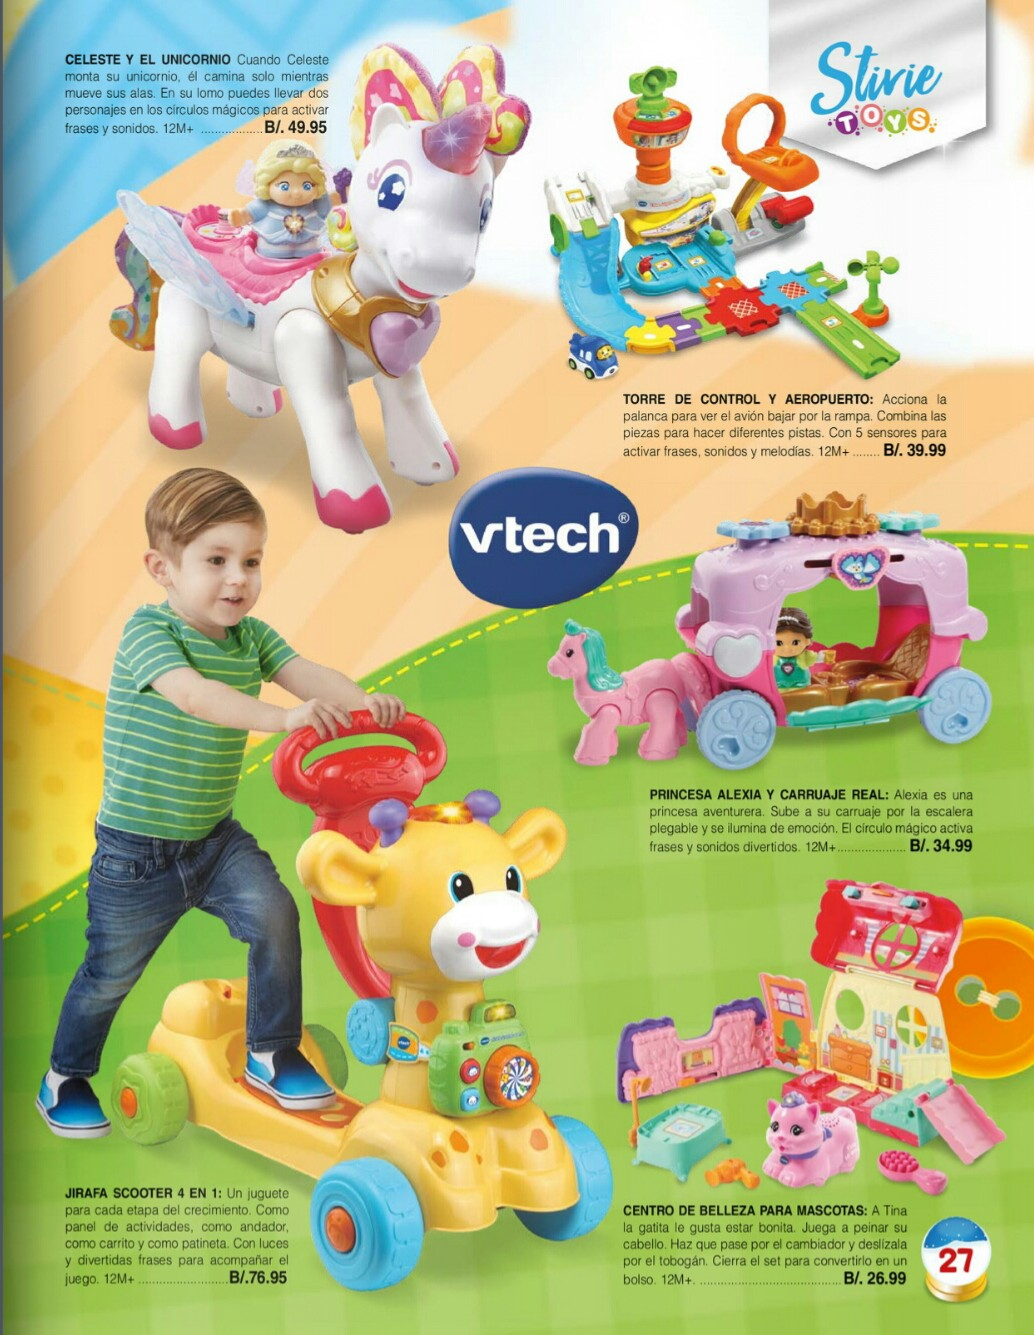 Catalogo juguetes Stivie toys 2018 p27